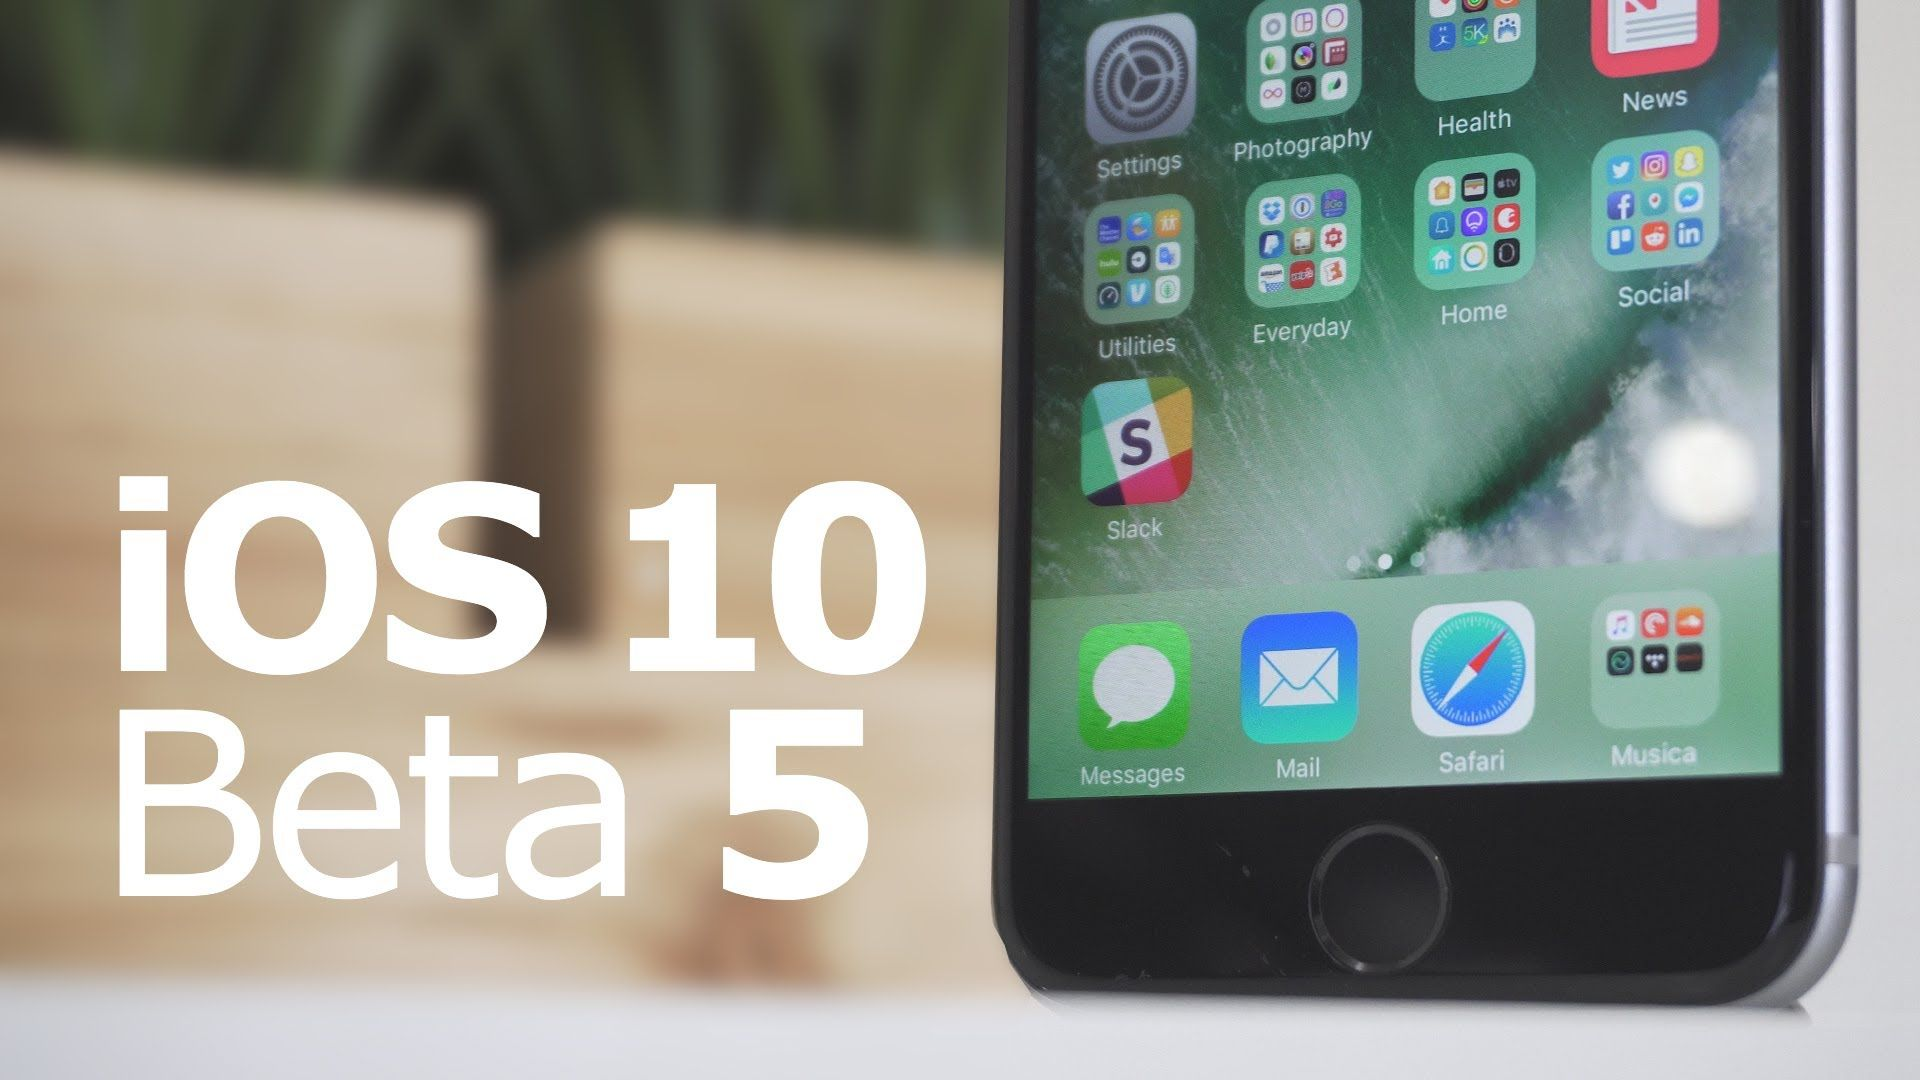 Beta Mobili ~ Know more about ios beta كن مثقفا